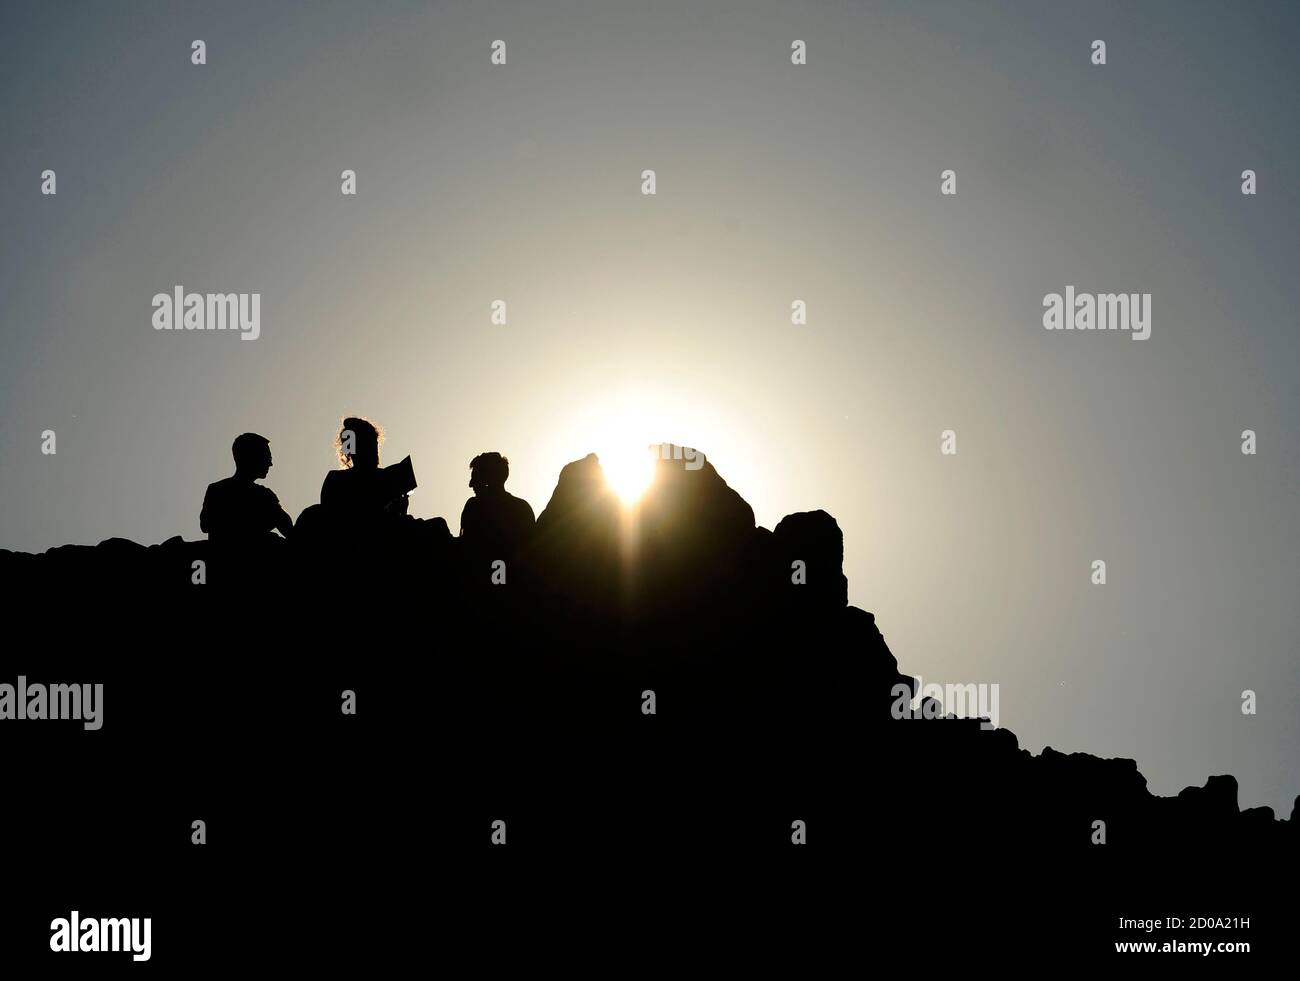 Macedonians celebrate the summer solstice at the marker of the Kokino megalithic observatory in Kumanovo June 21, 2013. The 3,800 years old observatory was discovered in 2001 in the north-western town of Kumanovo 70 km (43 miles) north from capital Skopje and is ranked as the fourth oldest observatory in the world after Egypt's Abu Simbel, Britain's Stonehenge and Cambodia's Angkor Wat according to NASA.  REUTERS/Ognen Teofilovski (MACEDONIA - Tags: SOCIETY ENVIRONMENT TRAVEL) Stock Photo